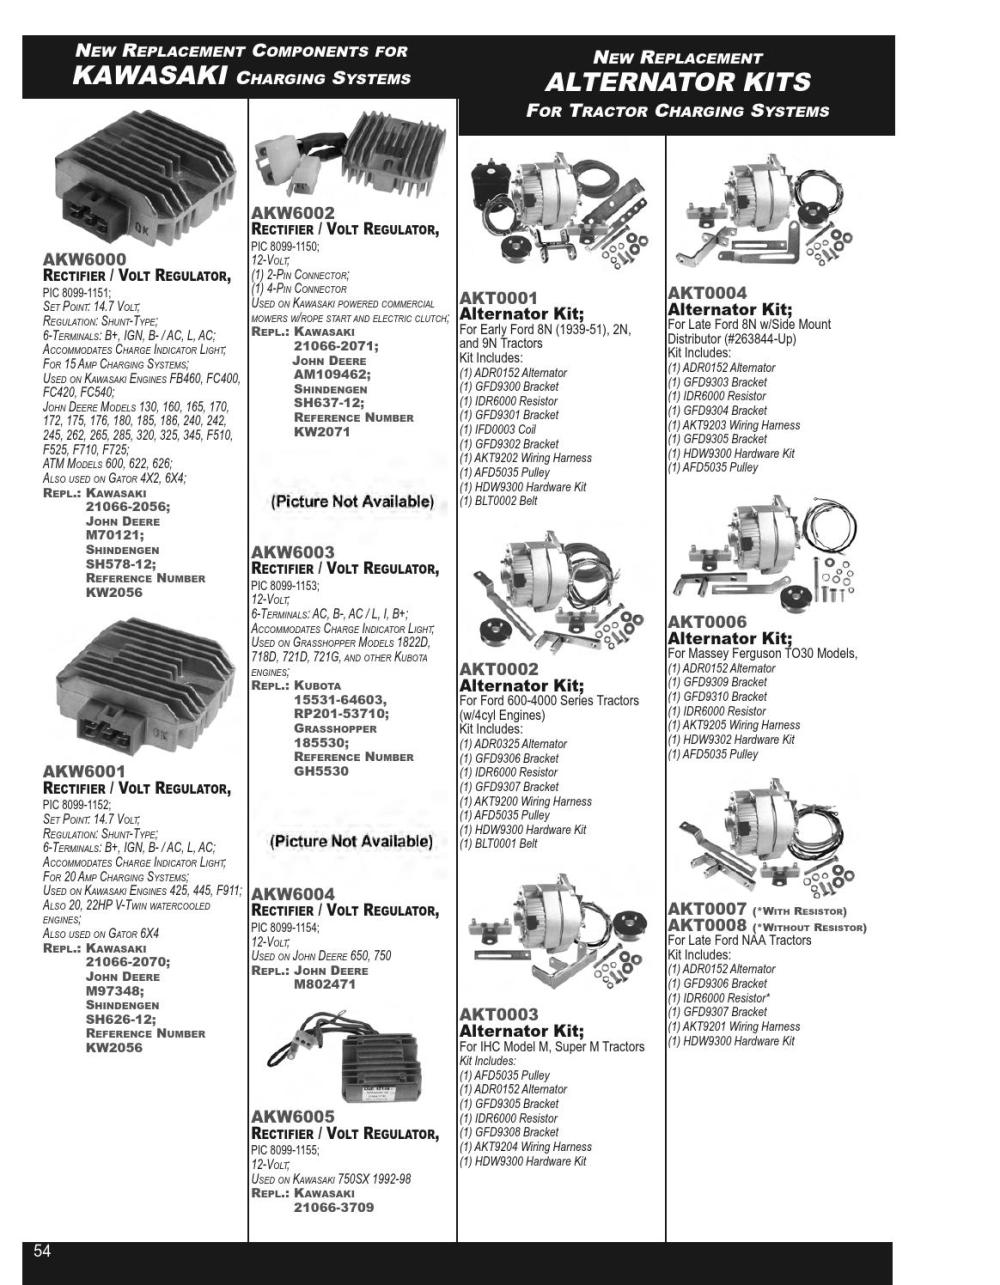 medium resolution of arrowhead electrical products master components catalog by arrowhead electrical products issuu